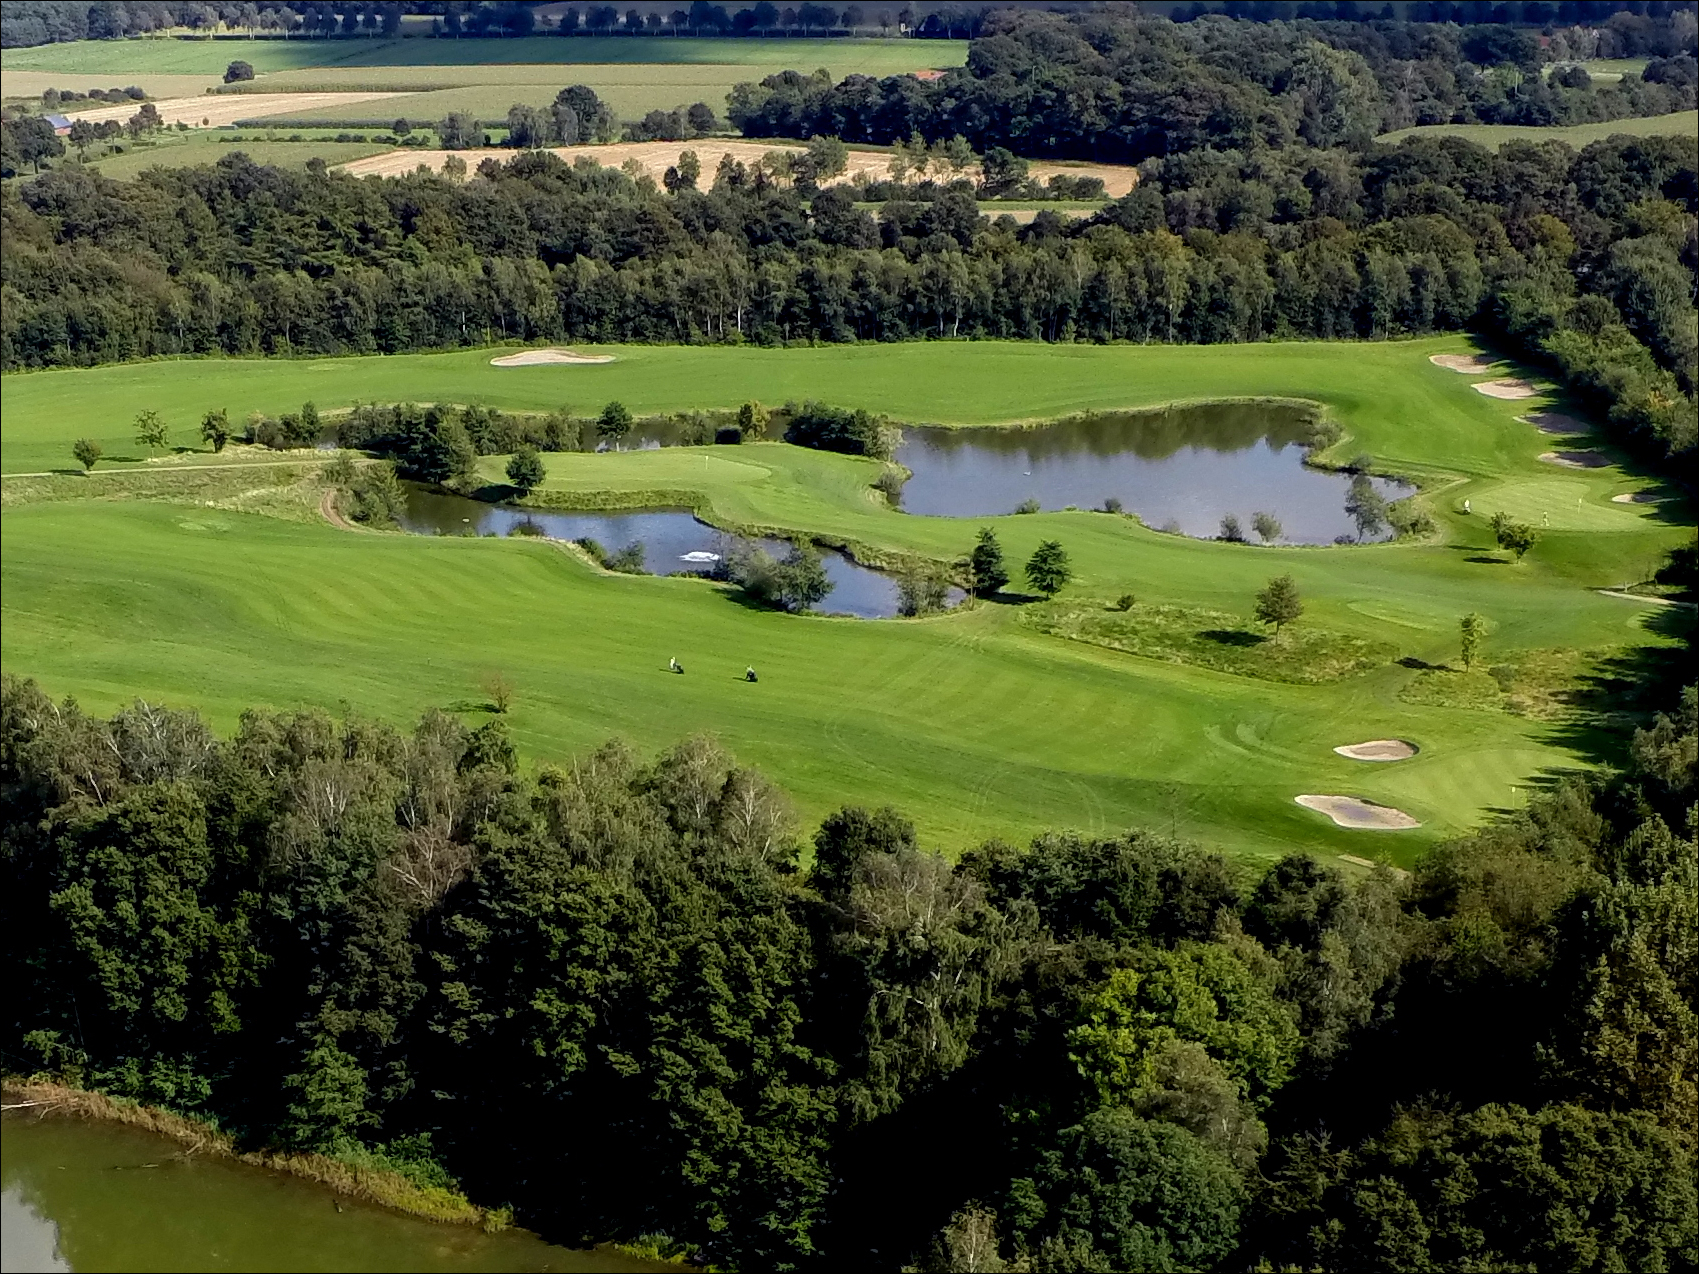 Golf-Club Aldruper Heide